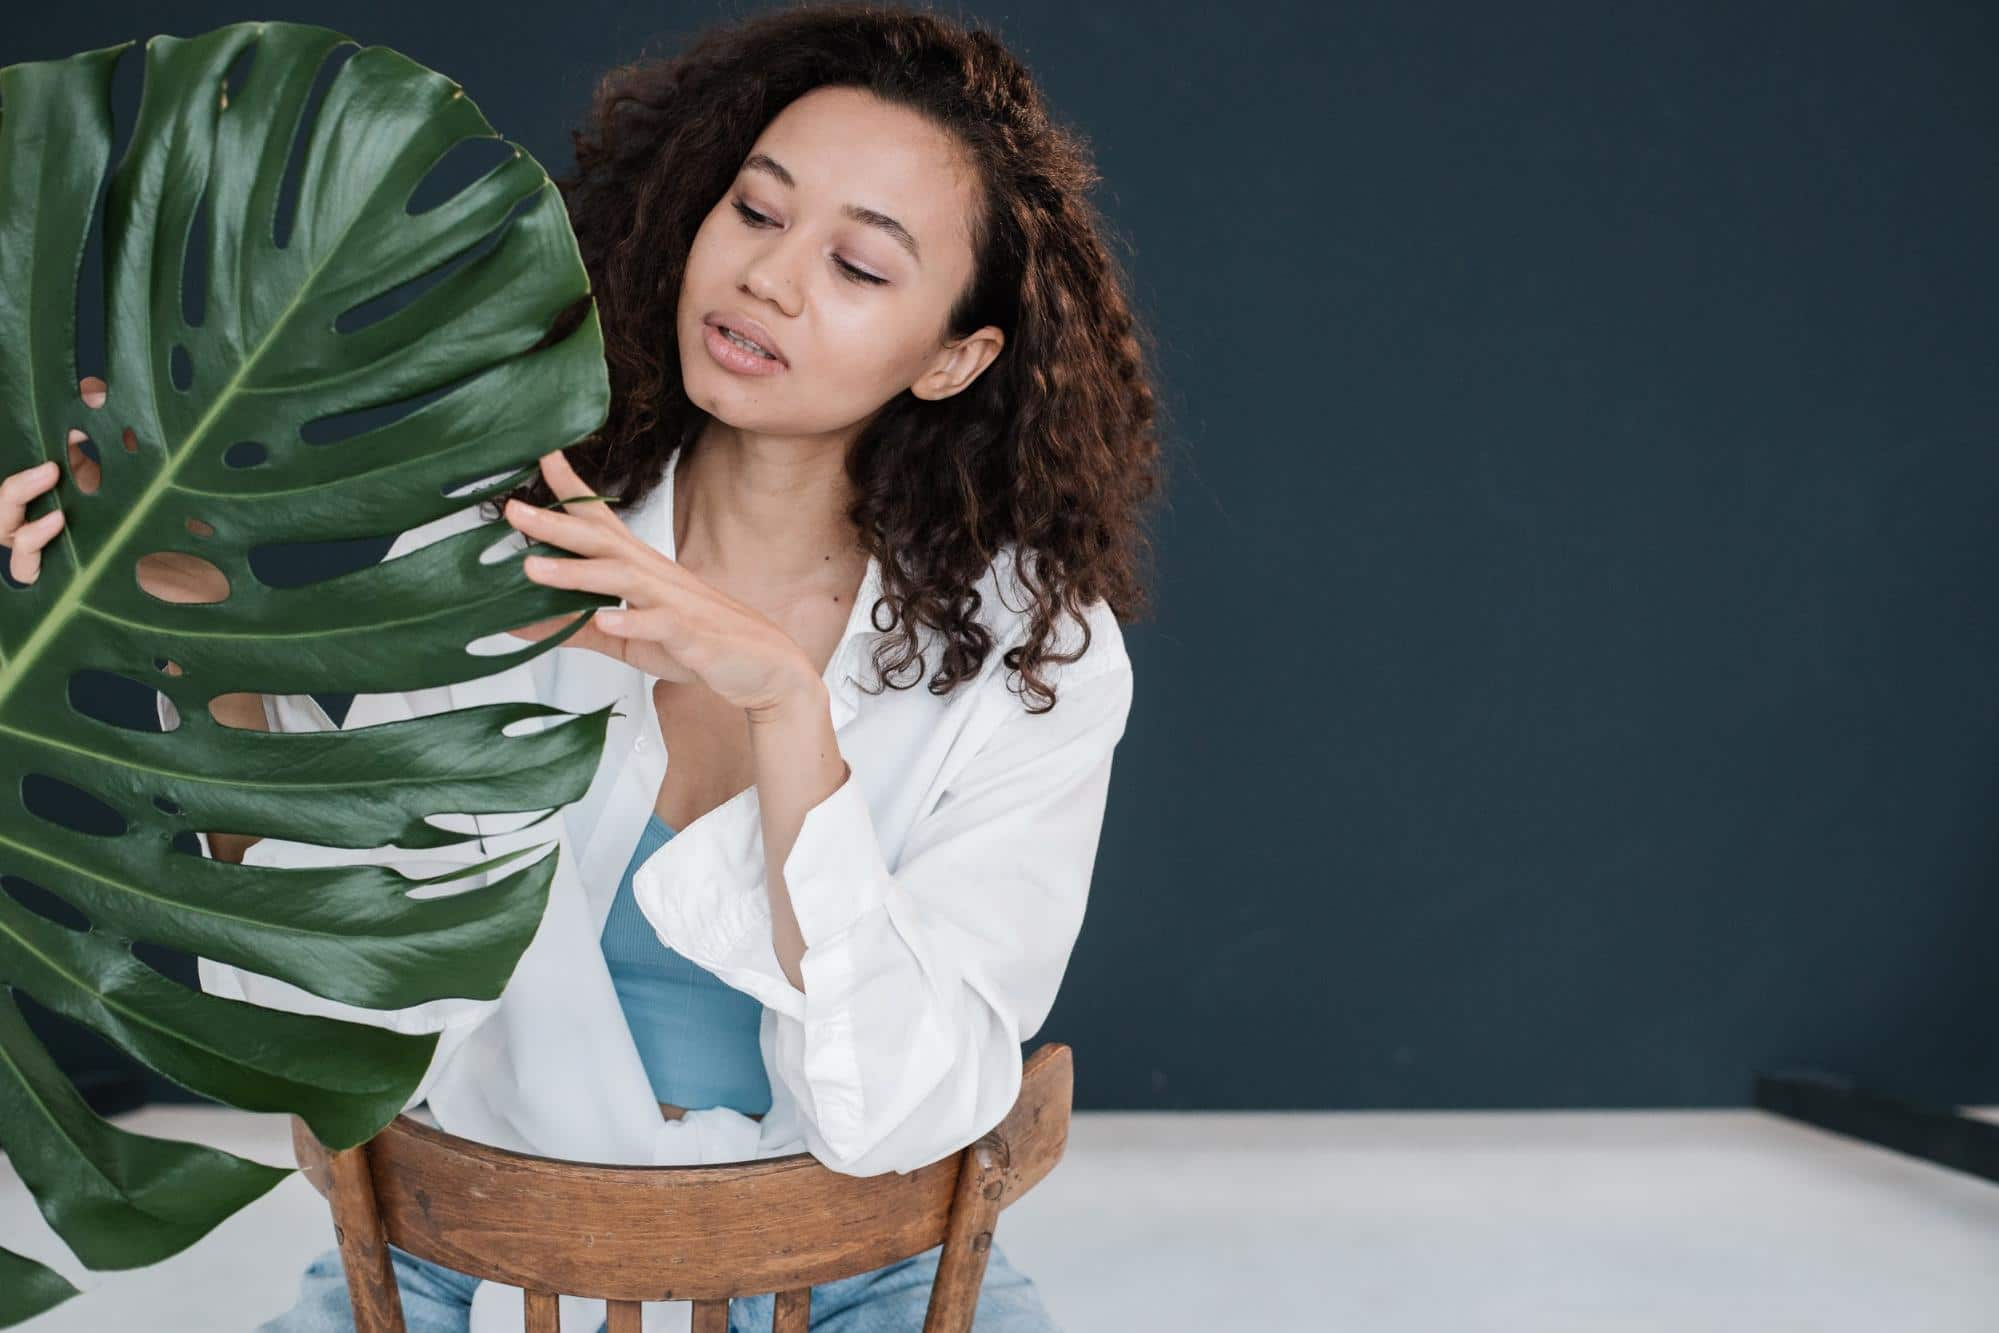 Photo of a healthy young woman sitting In a chair touching a plant. Taking prebiotics can help support the good bacteria in your gut and reinforce overall health.